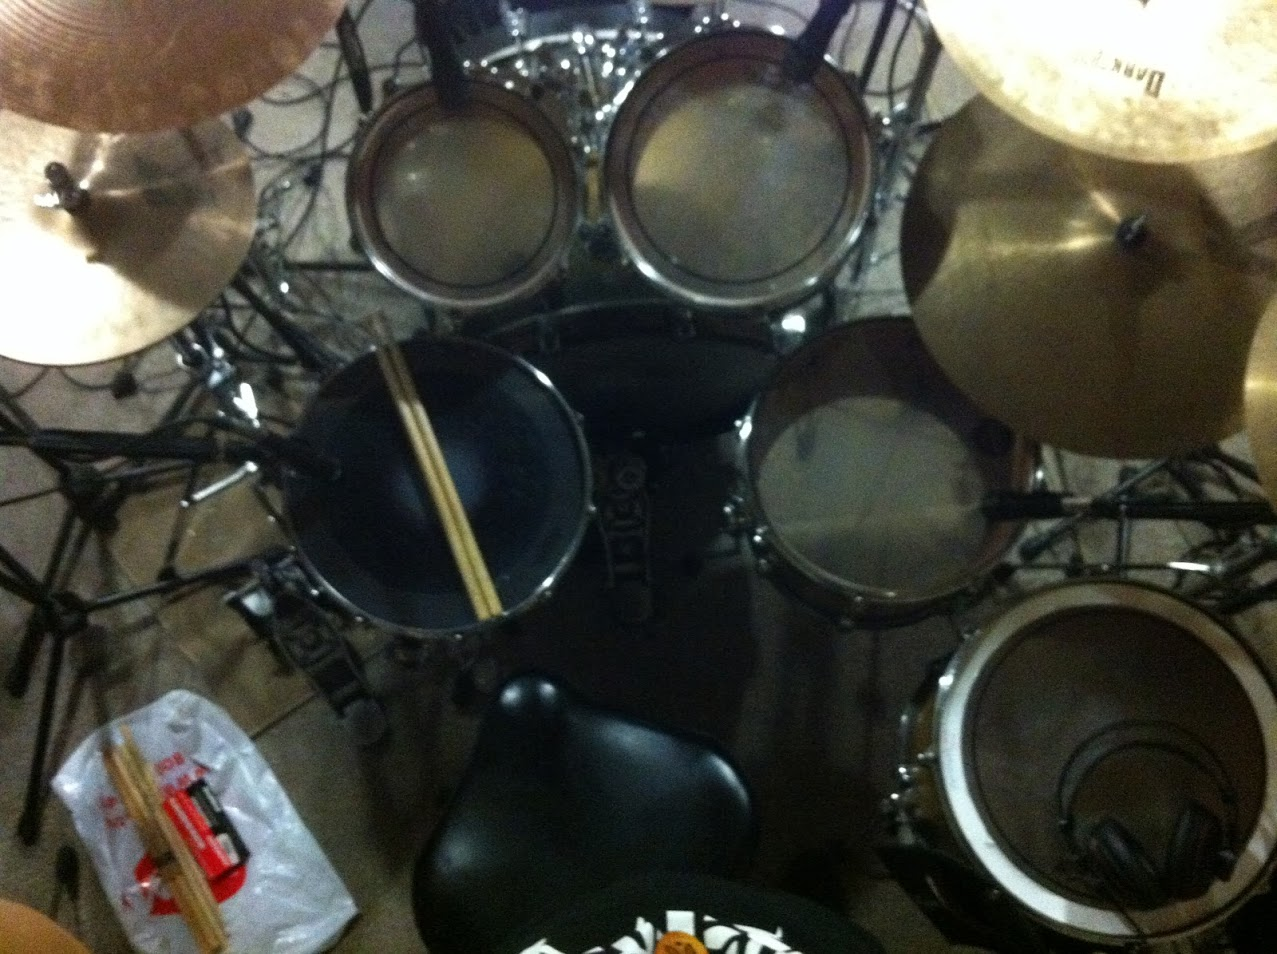 Drums for song 'Thrash - Way Of Life'